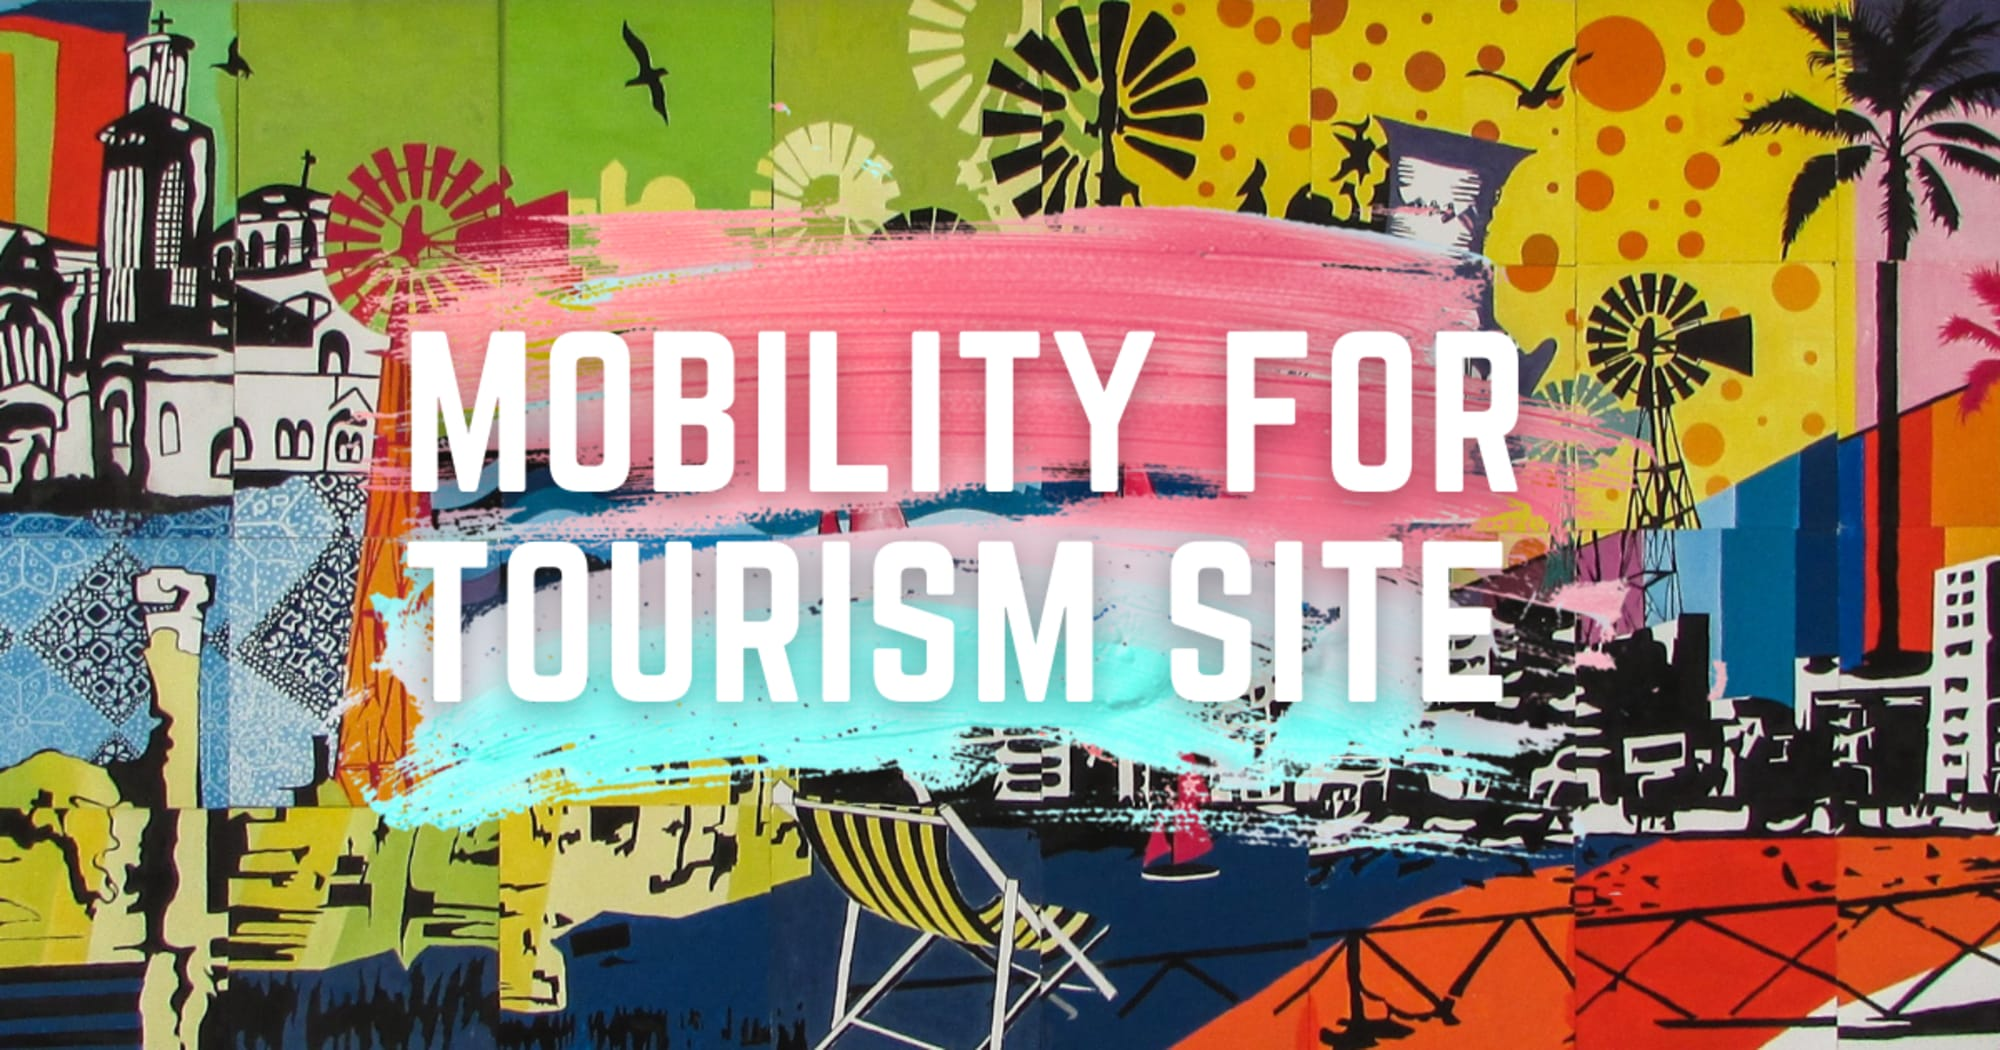 Proposal to remove RT-PCR tests to allow mobility for tourism site